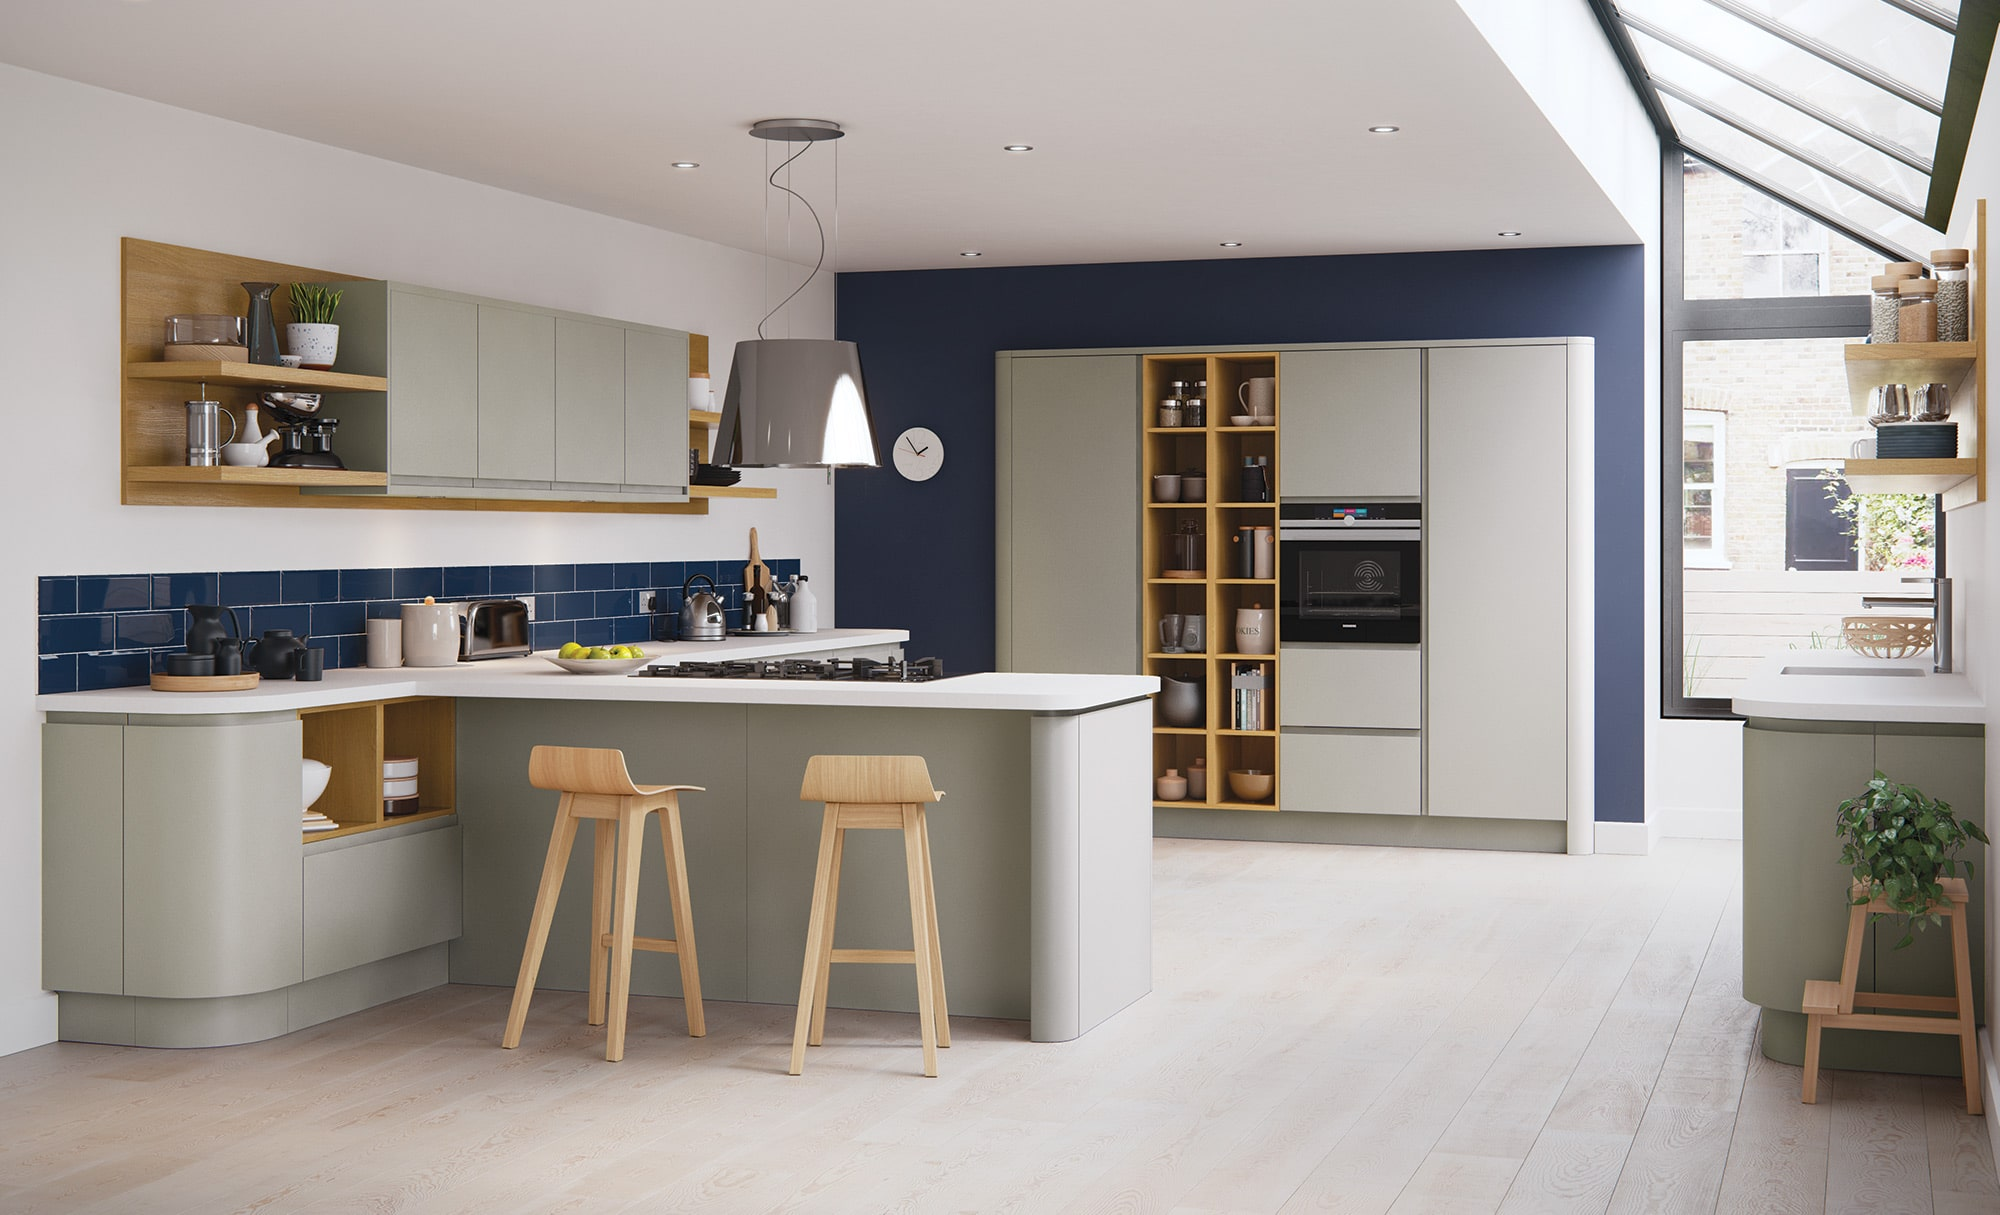 Siddington matte stone painted kitchen hero, from Riley James Kitchens Stroud